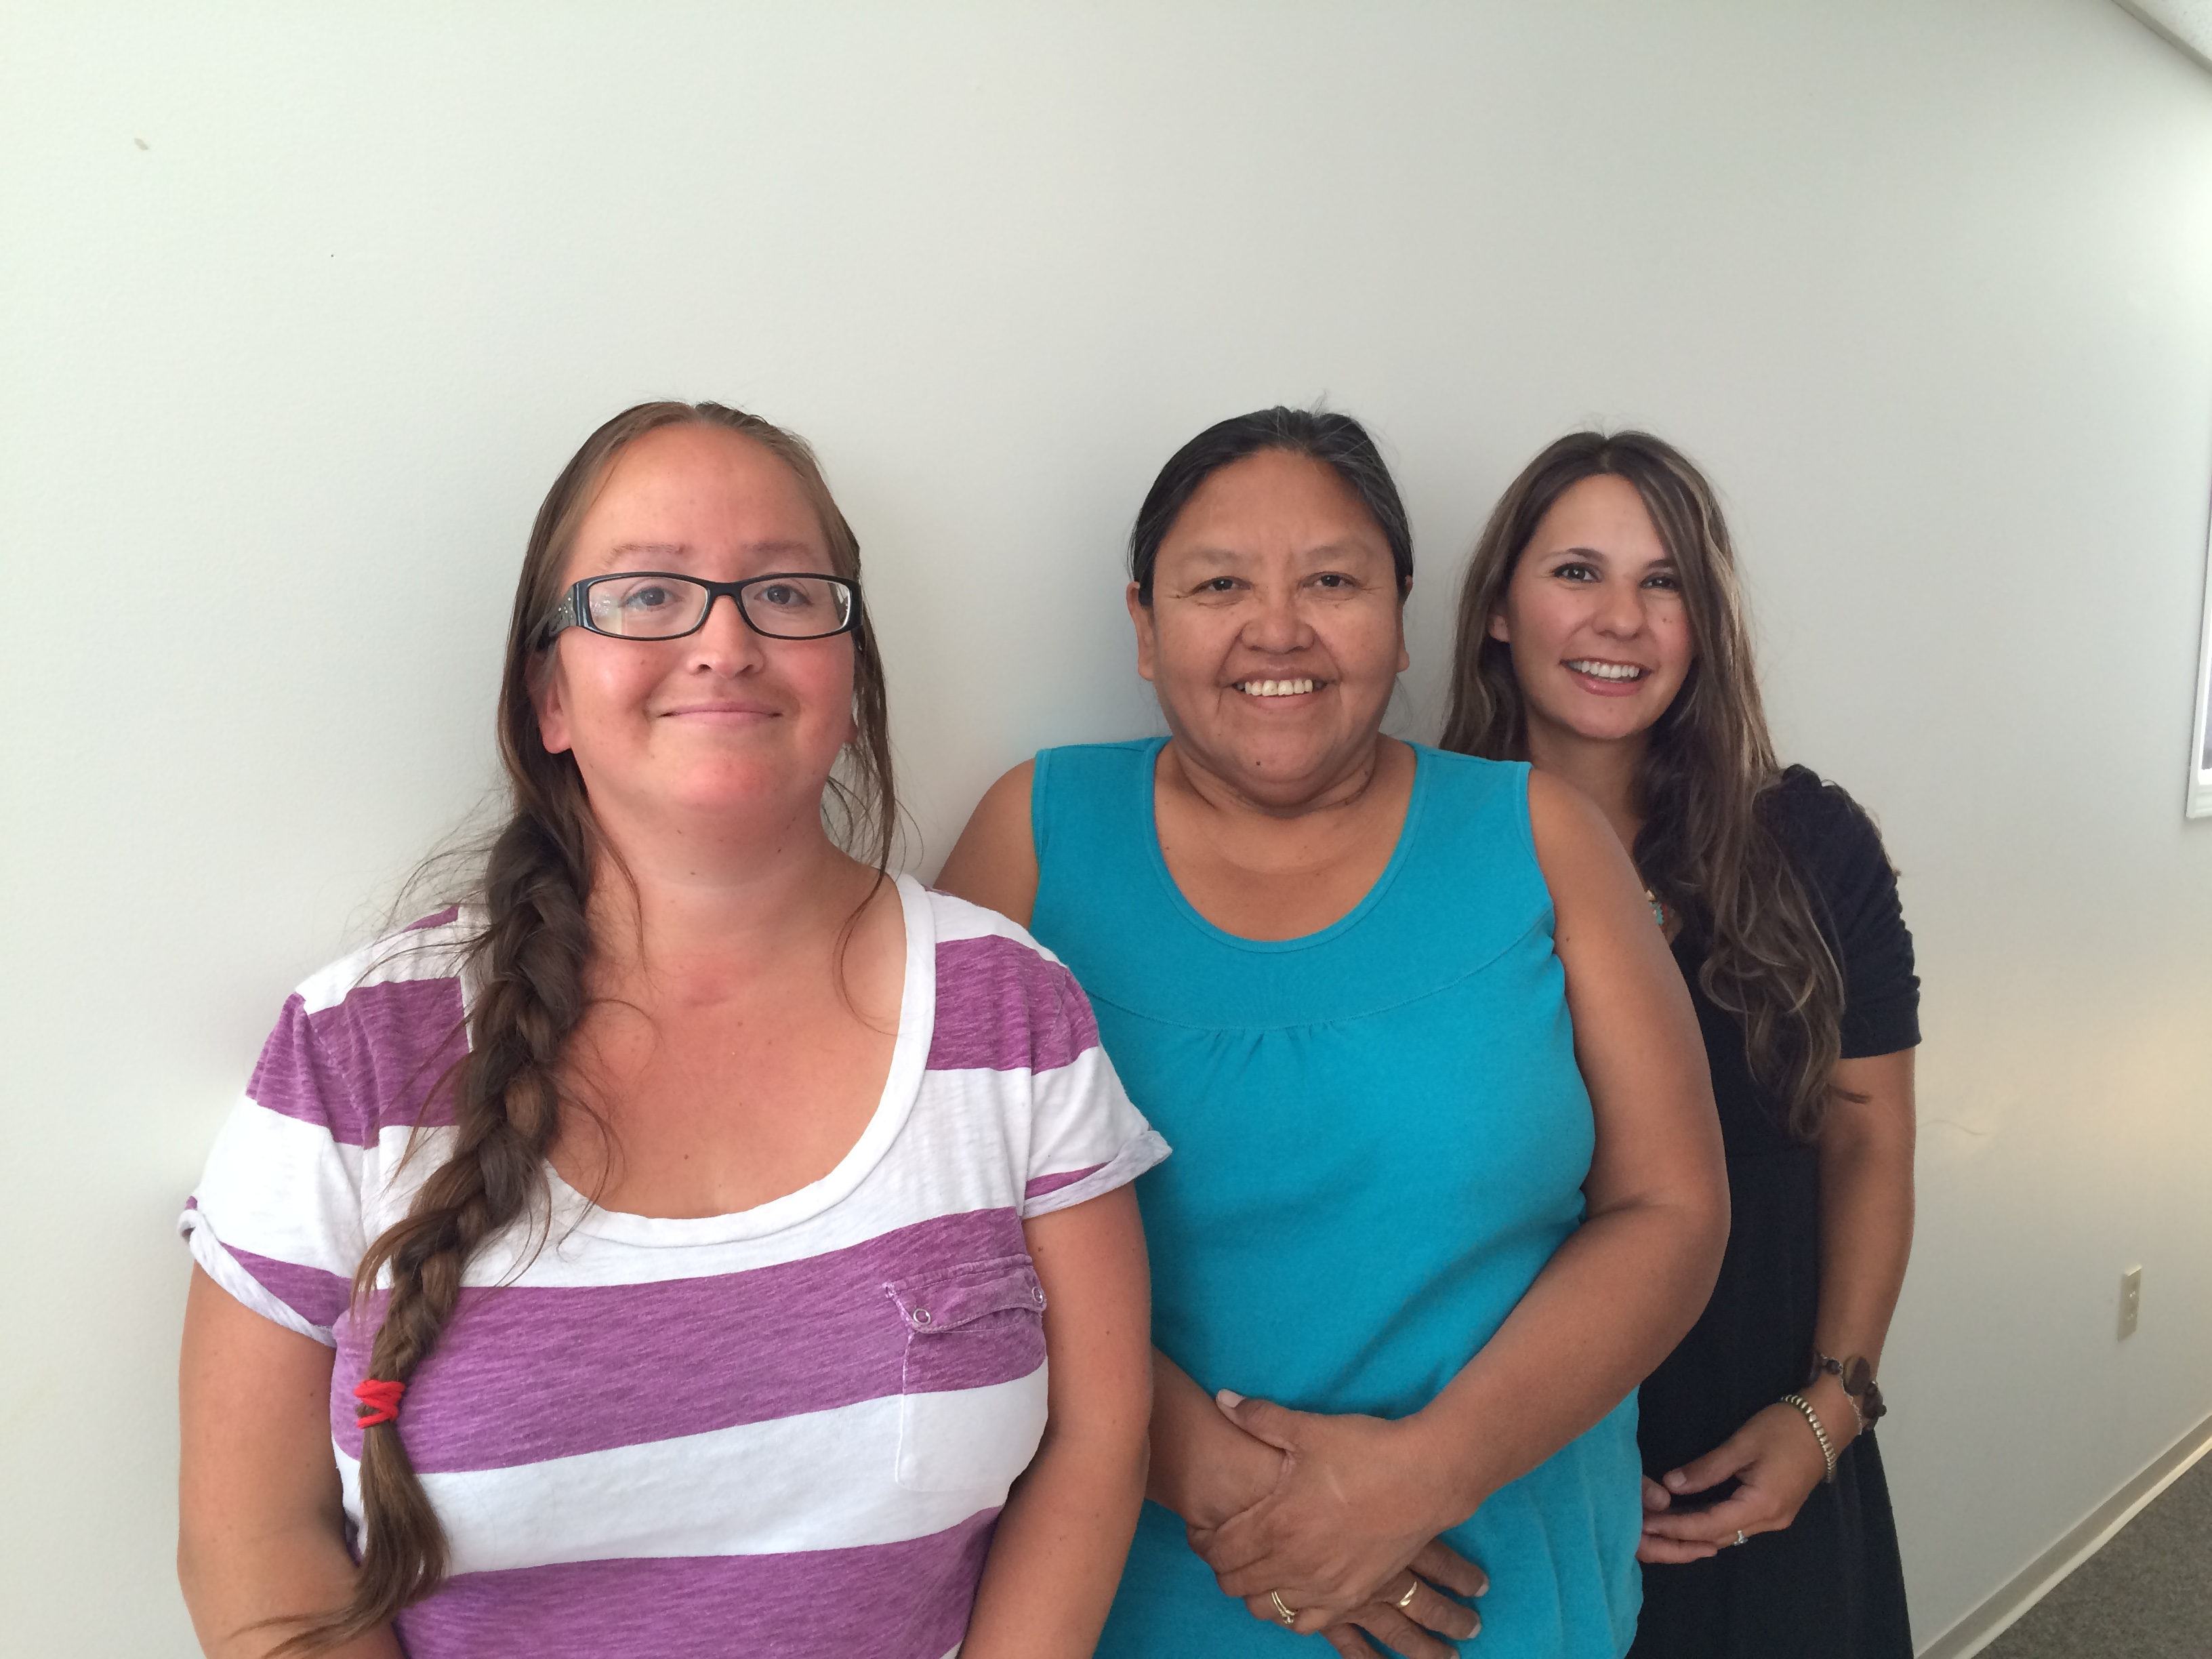 Chrystal Williams, Phyllis Rosette and Kristina Moller, three of our Indigenous patient partners in a photo taken during a meeting in Williams Lake in August 2016